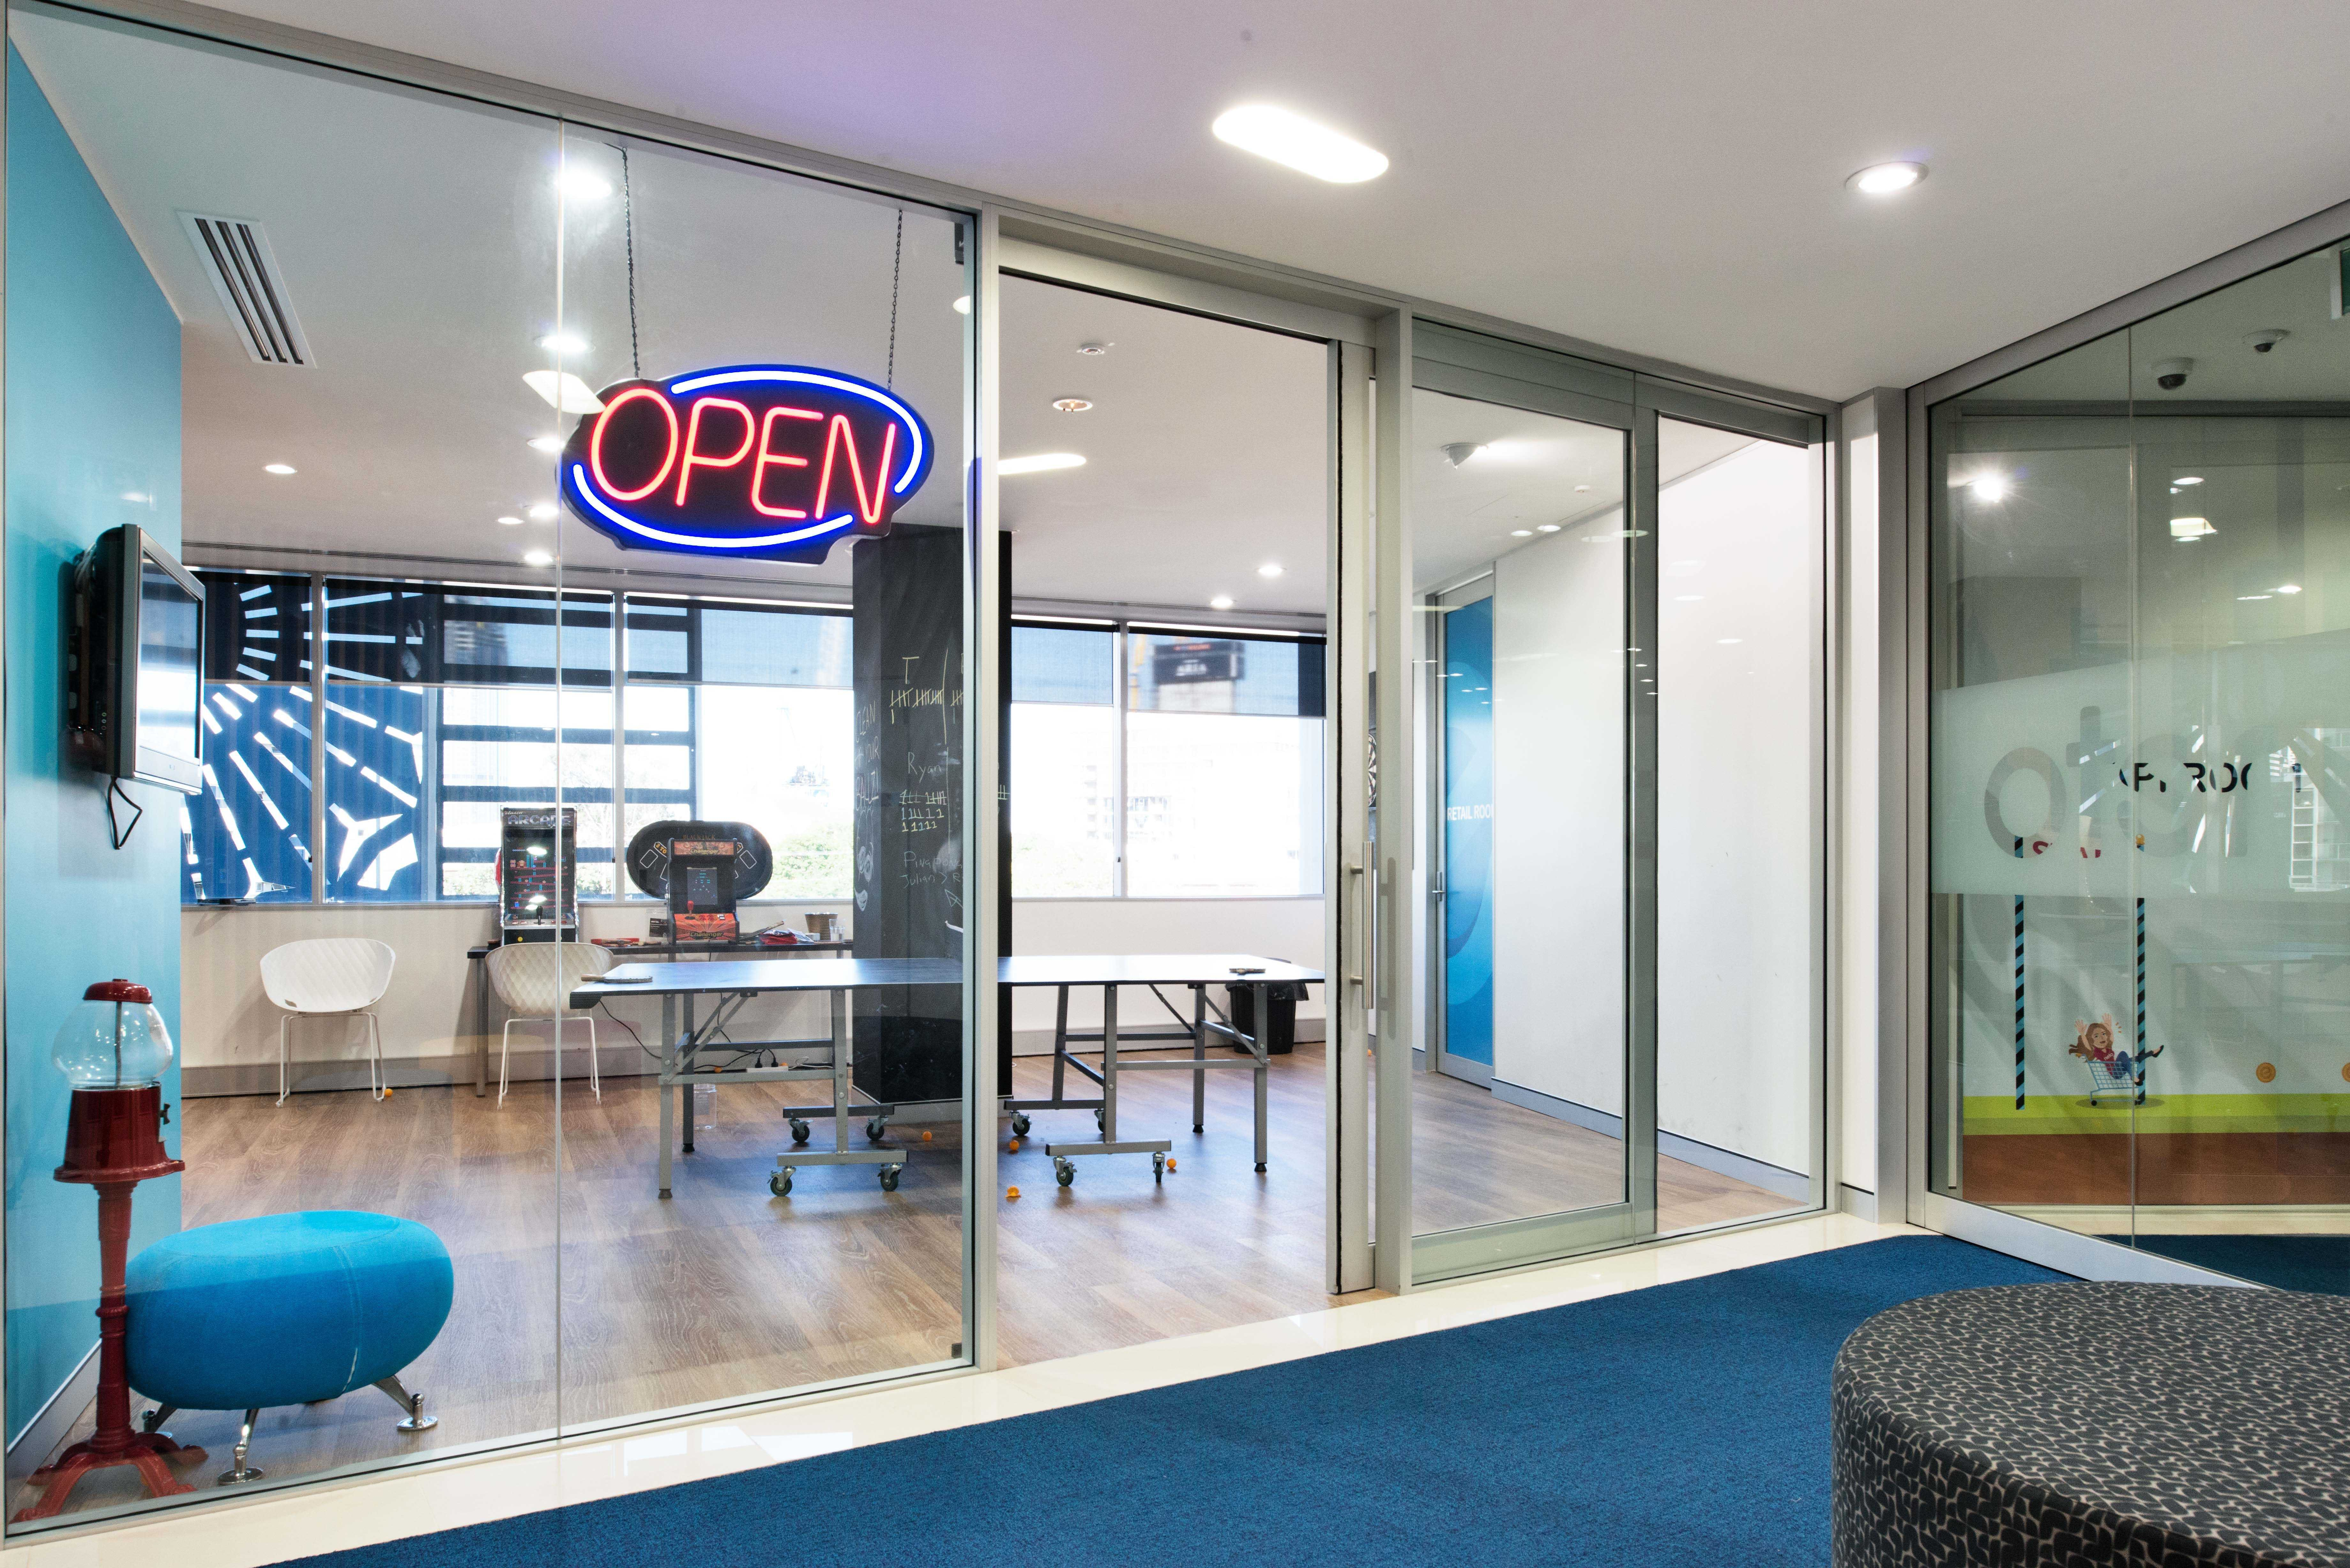 The Latest Office Fit Out Trends To Keep Your Eye Out For In 2018